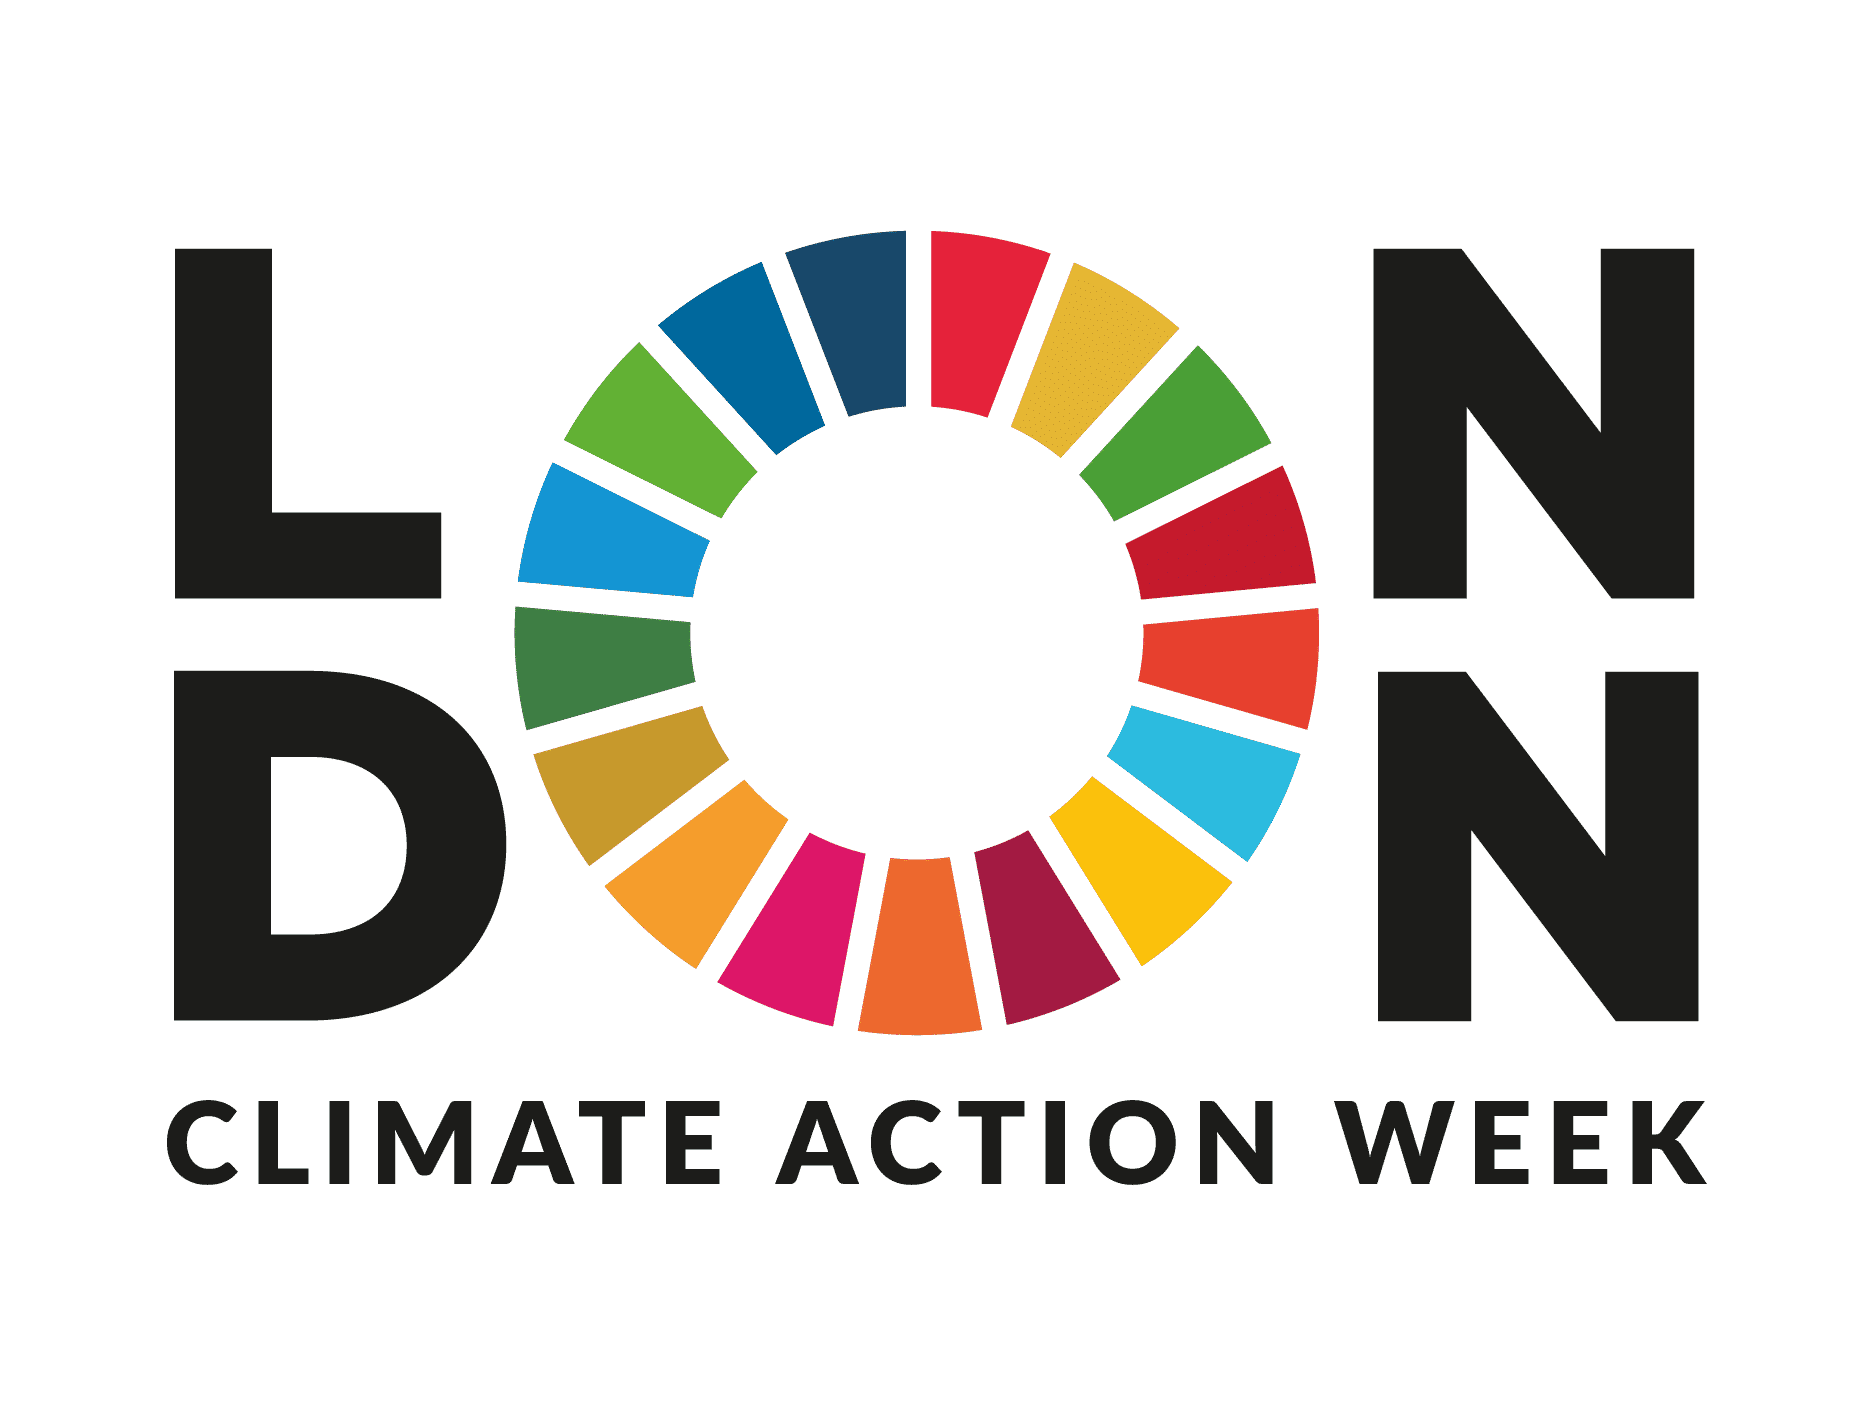 London Climate Action Week 2020 Logo